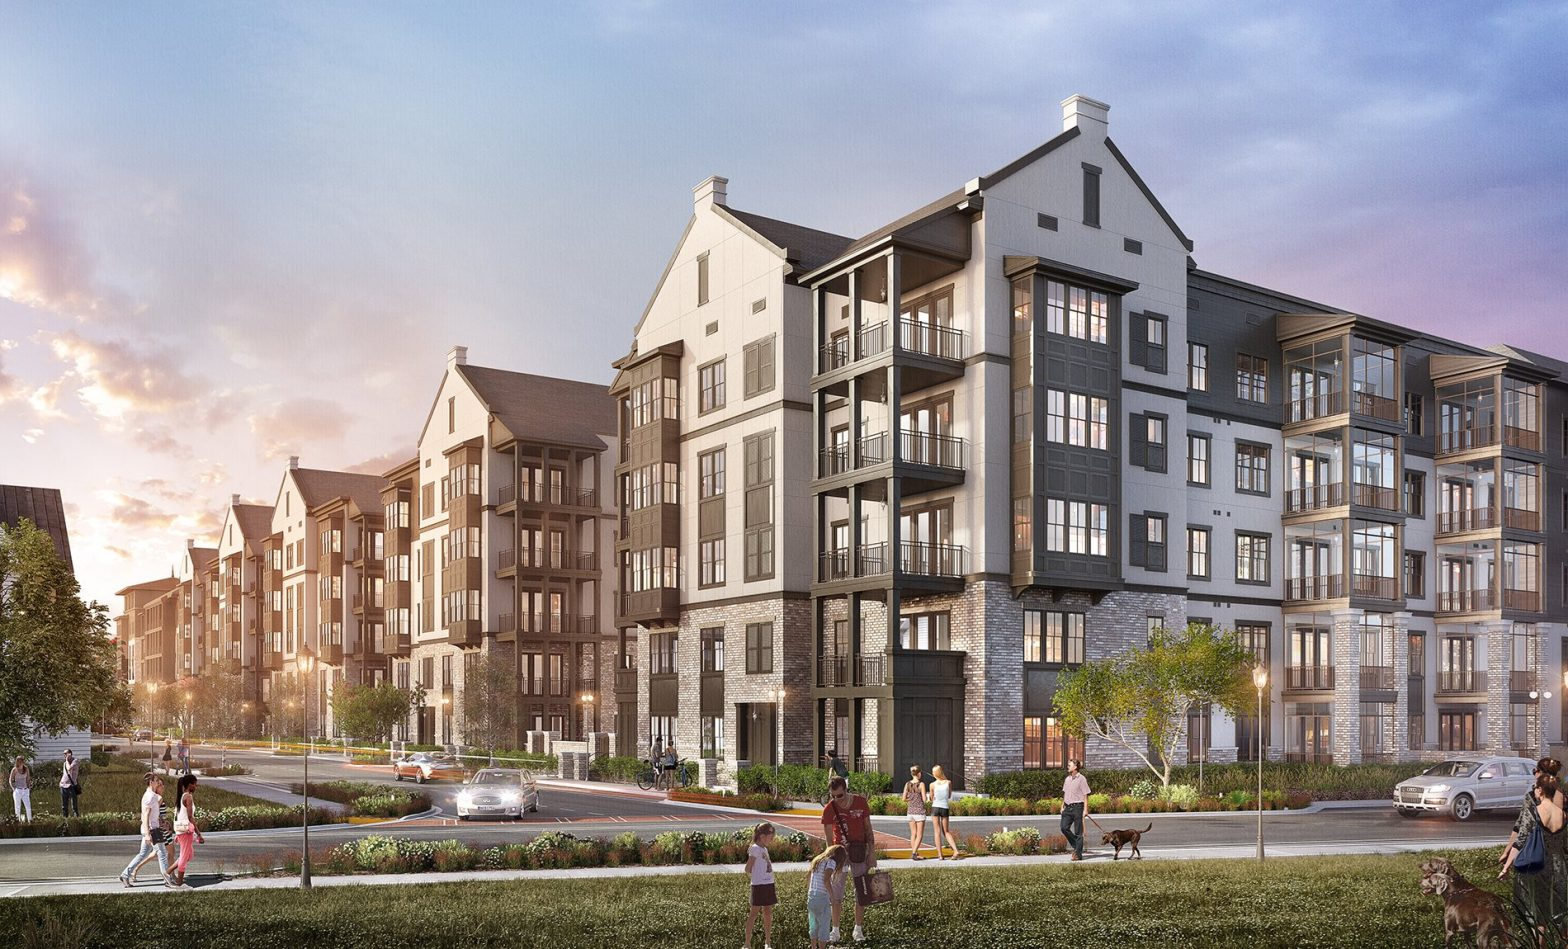 The Alastair Opens in Sandy Spring's New Aria Village Development | What Now Atlanta